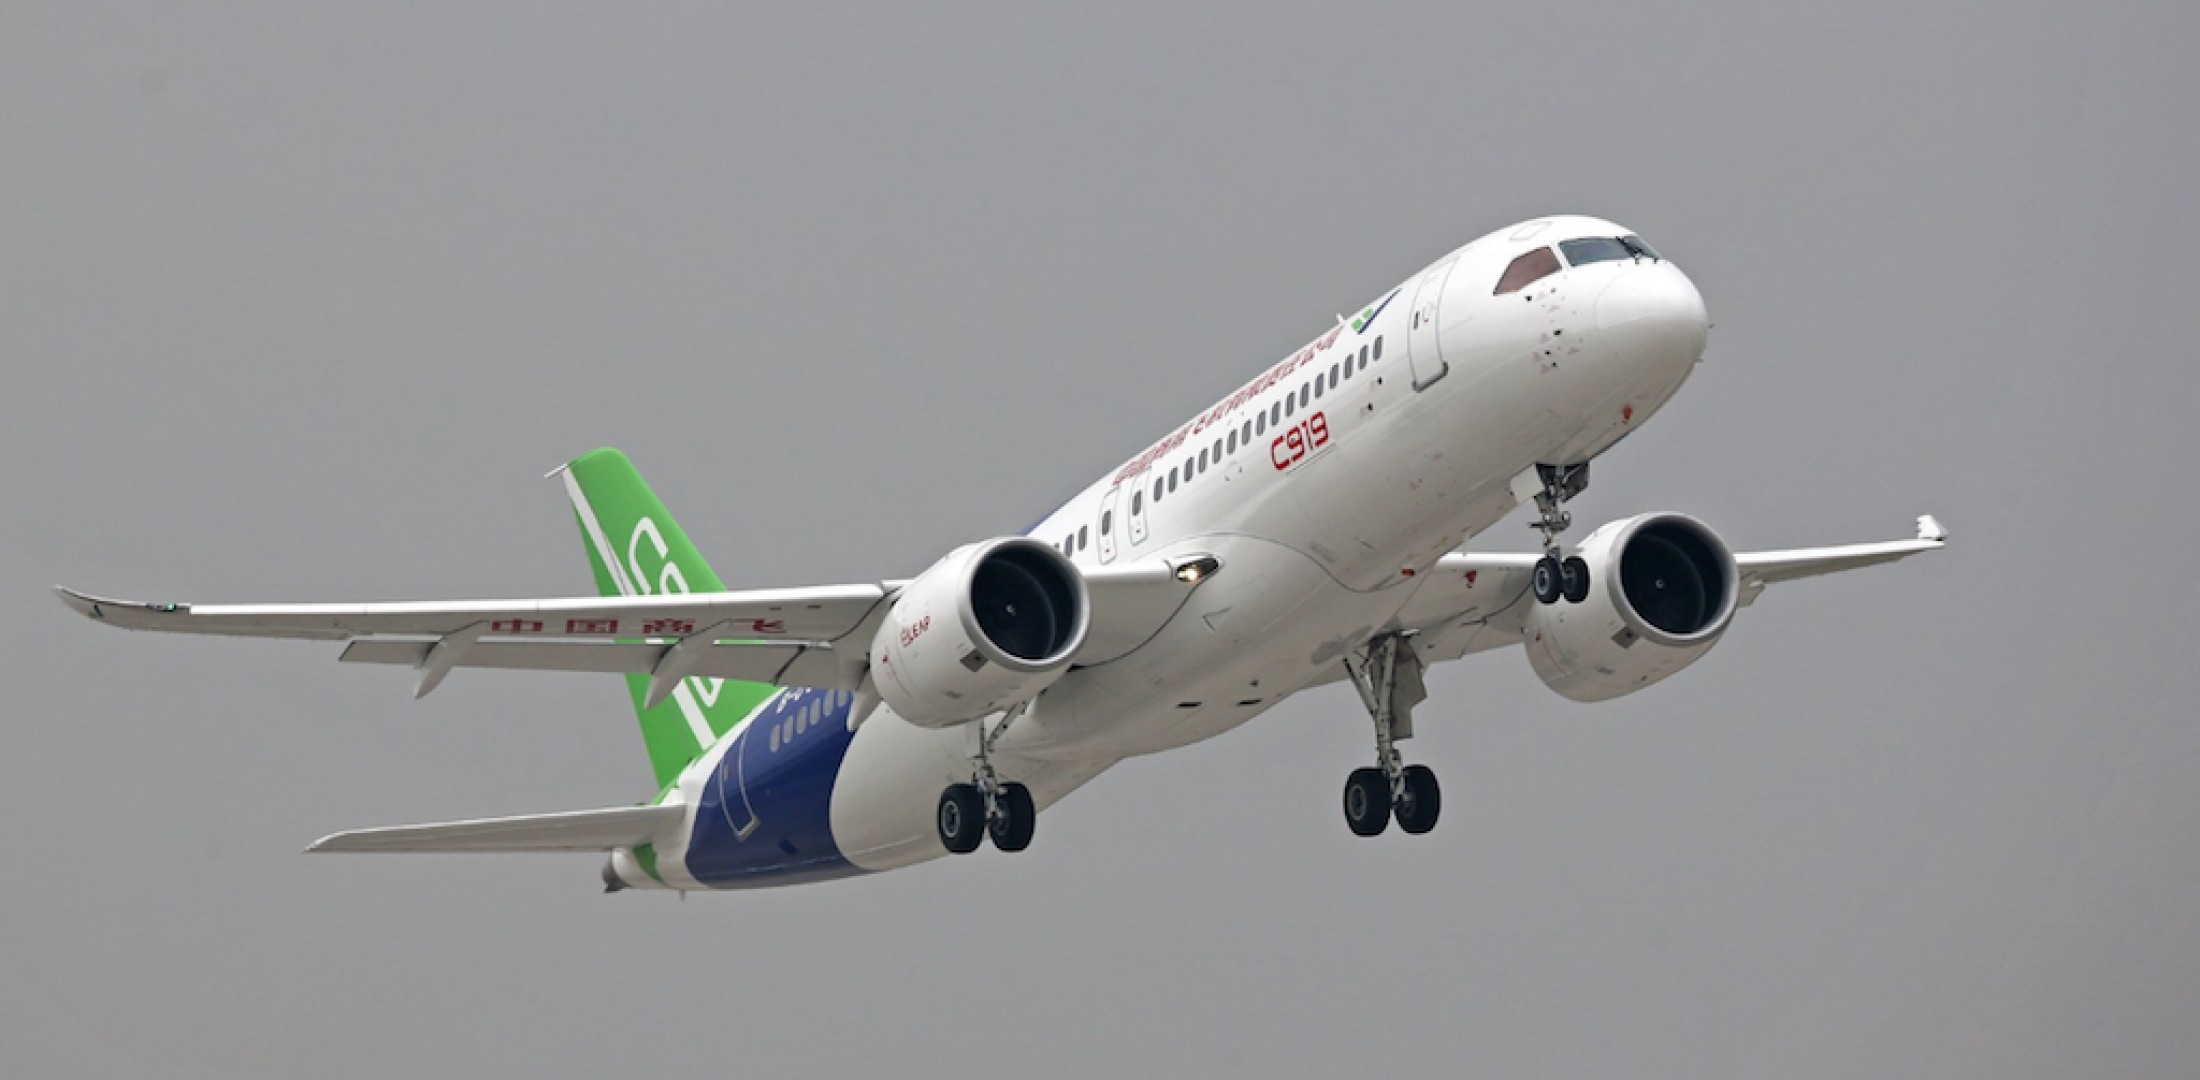 Comac's C919 Airliner Takes Flight from Shanghai | Air Transport ...